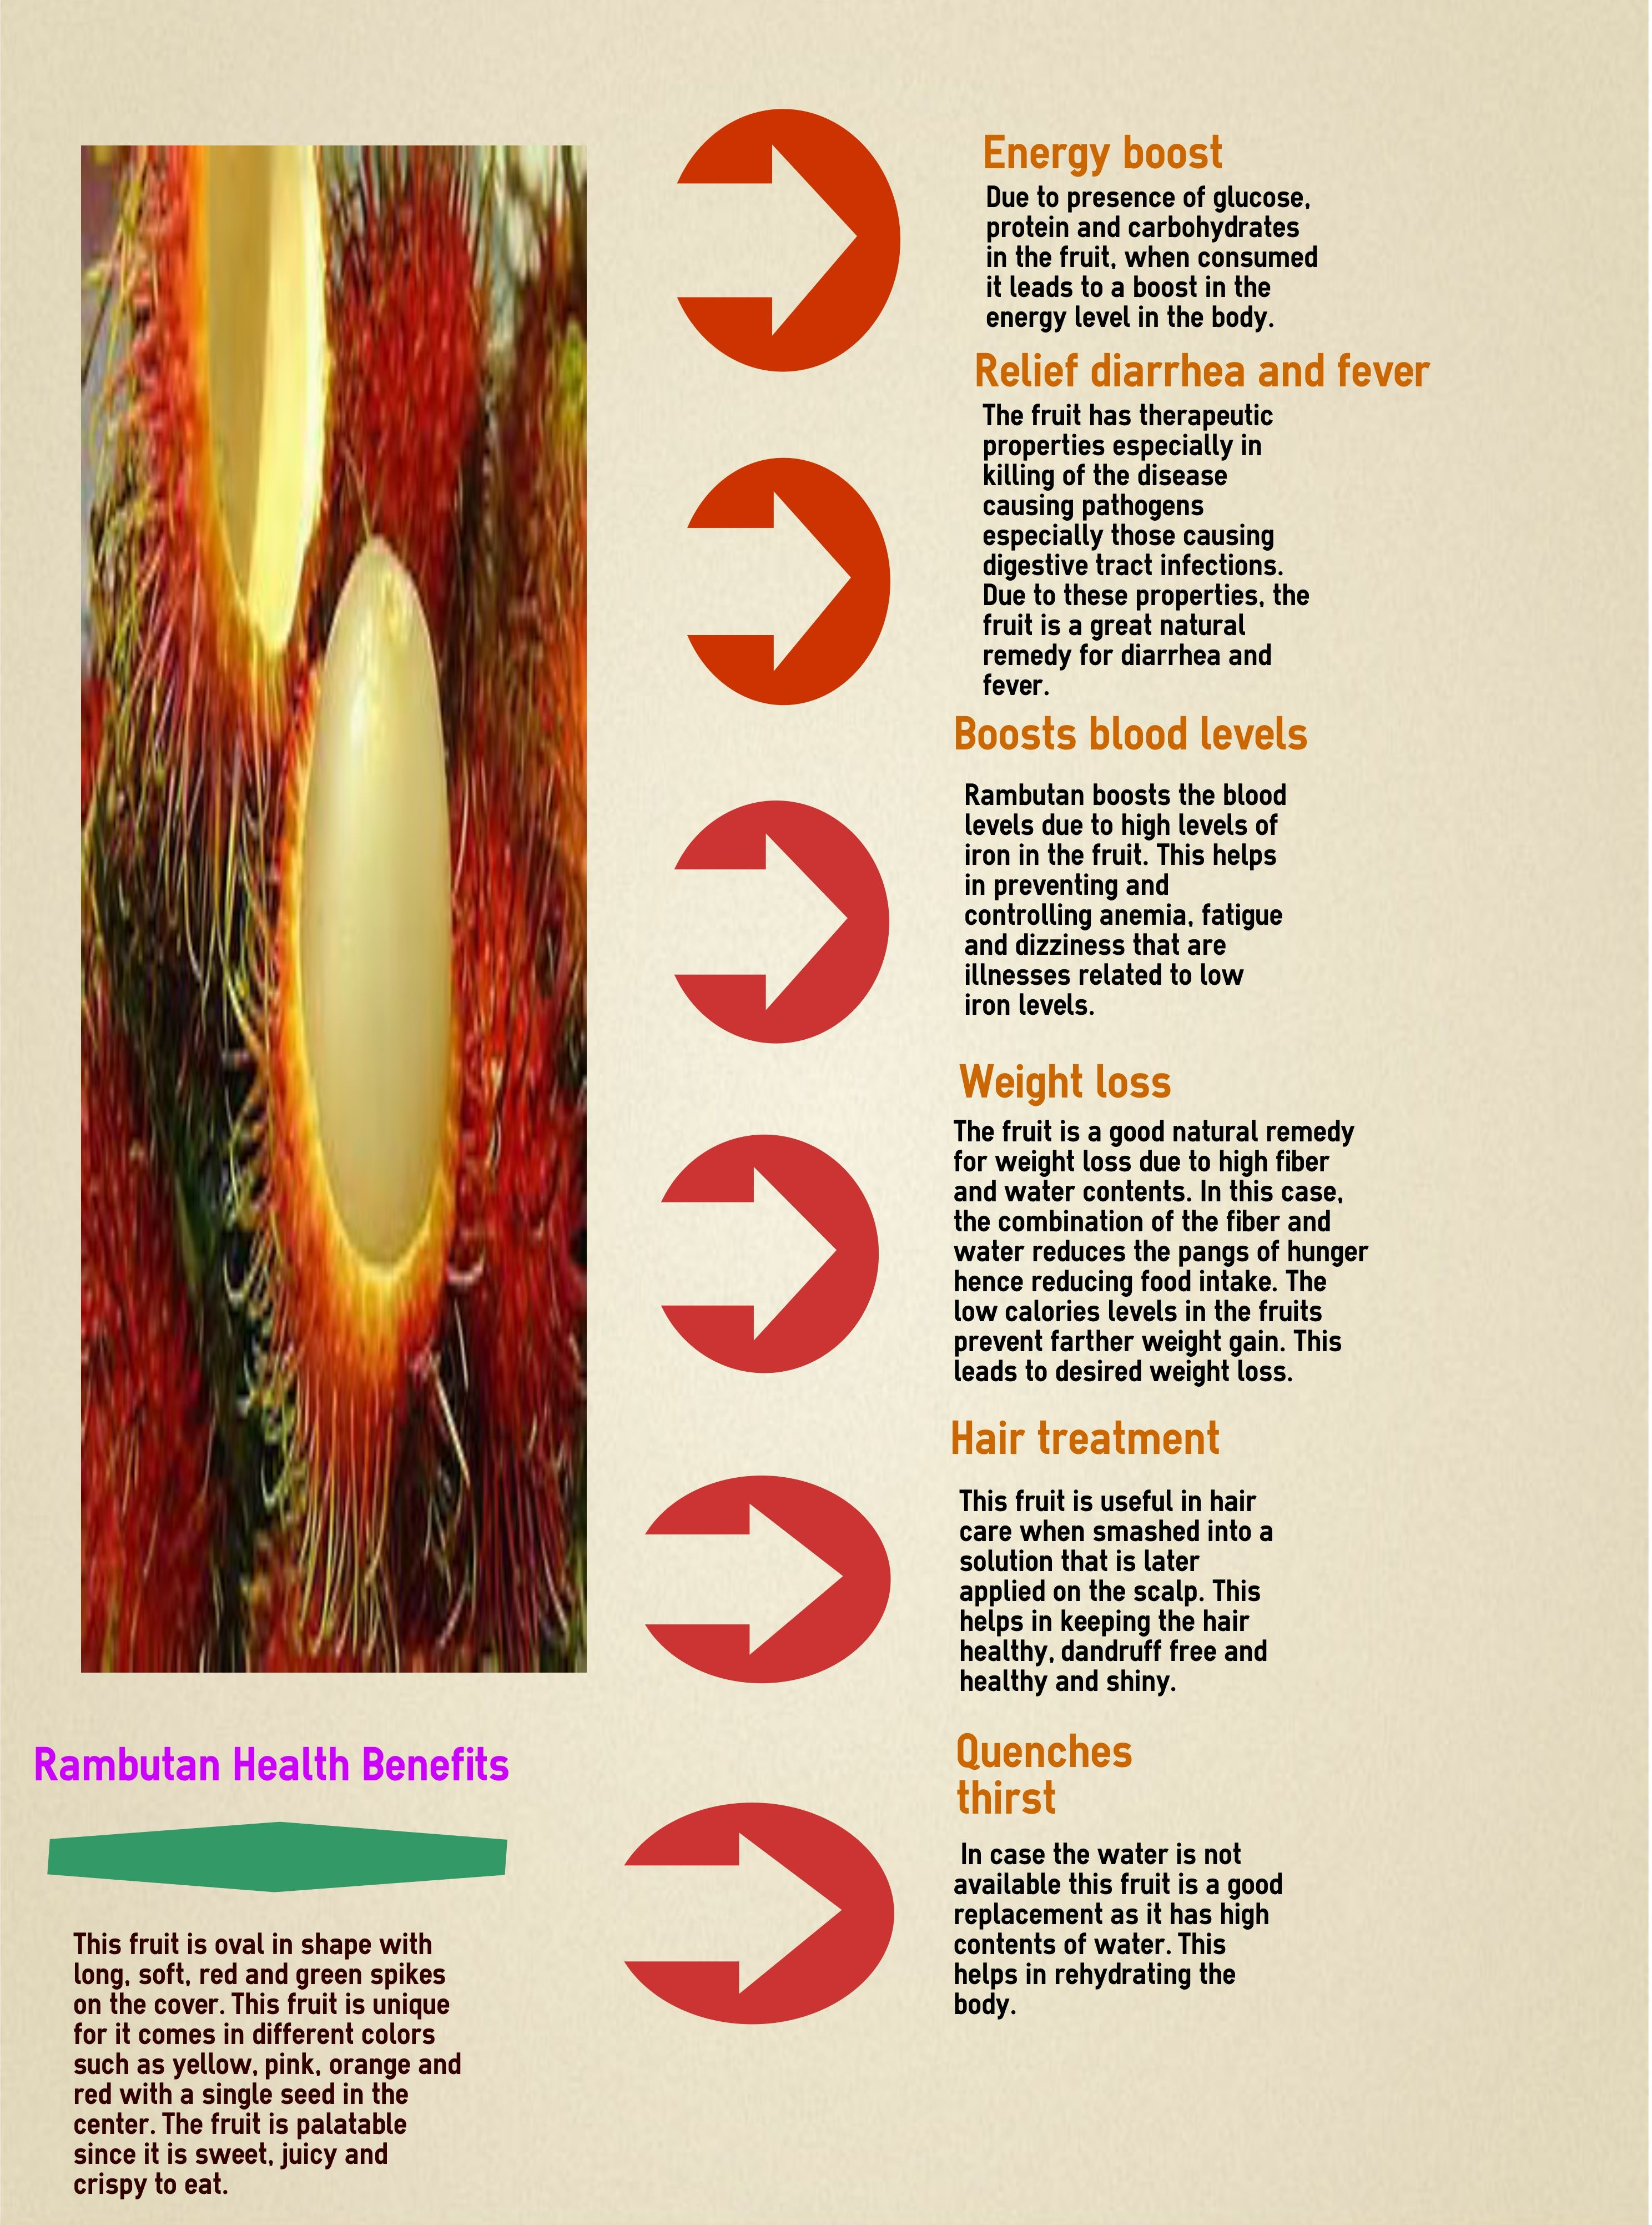 learn all about the health benefits of the rambutan fruit